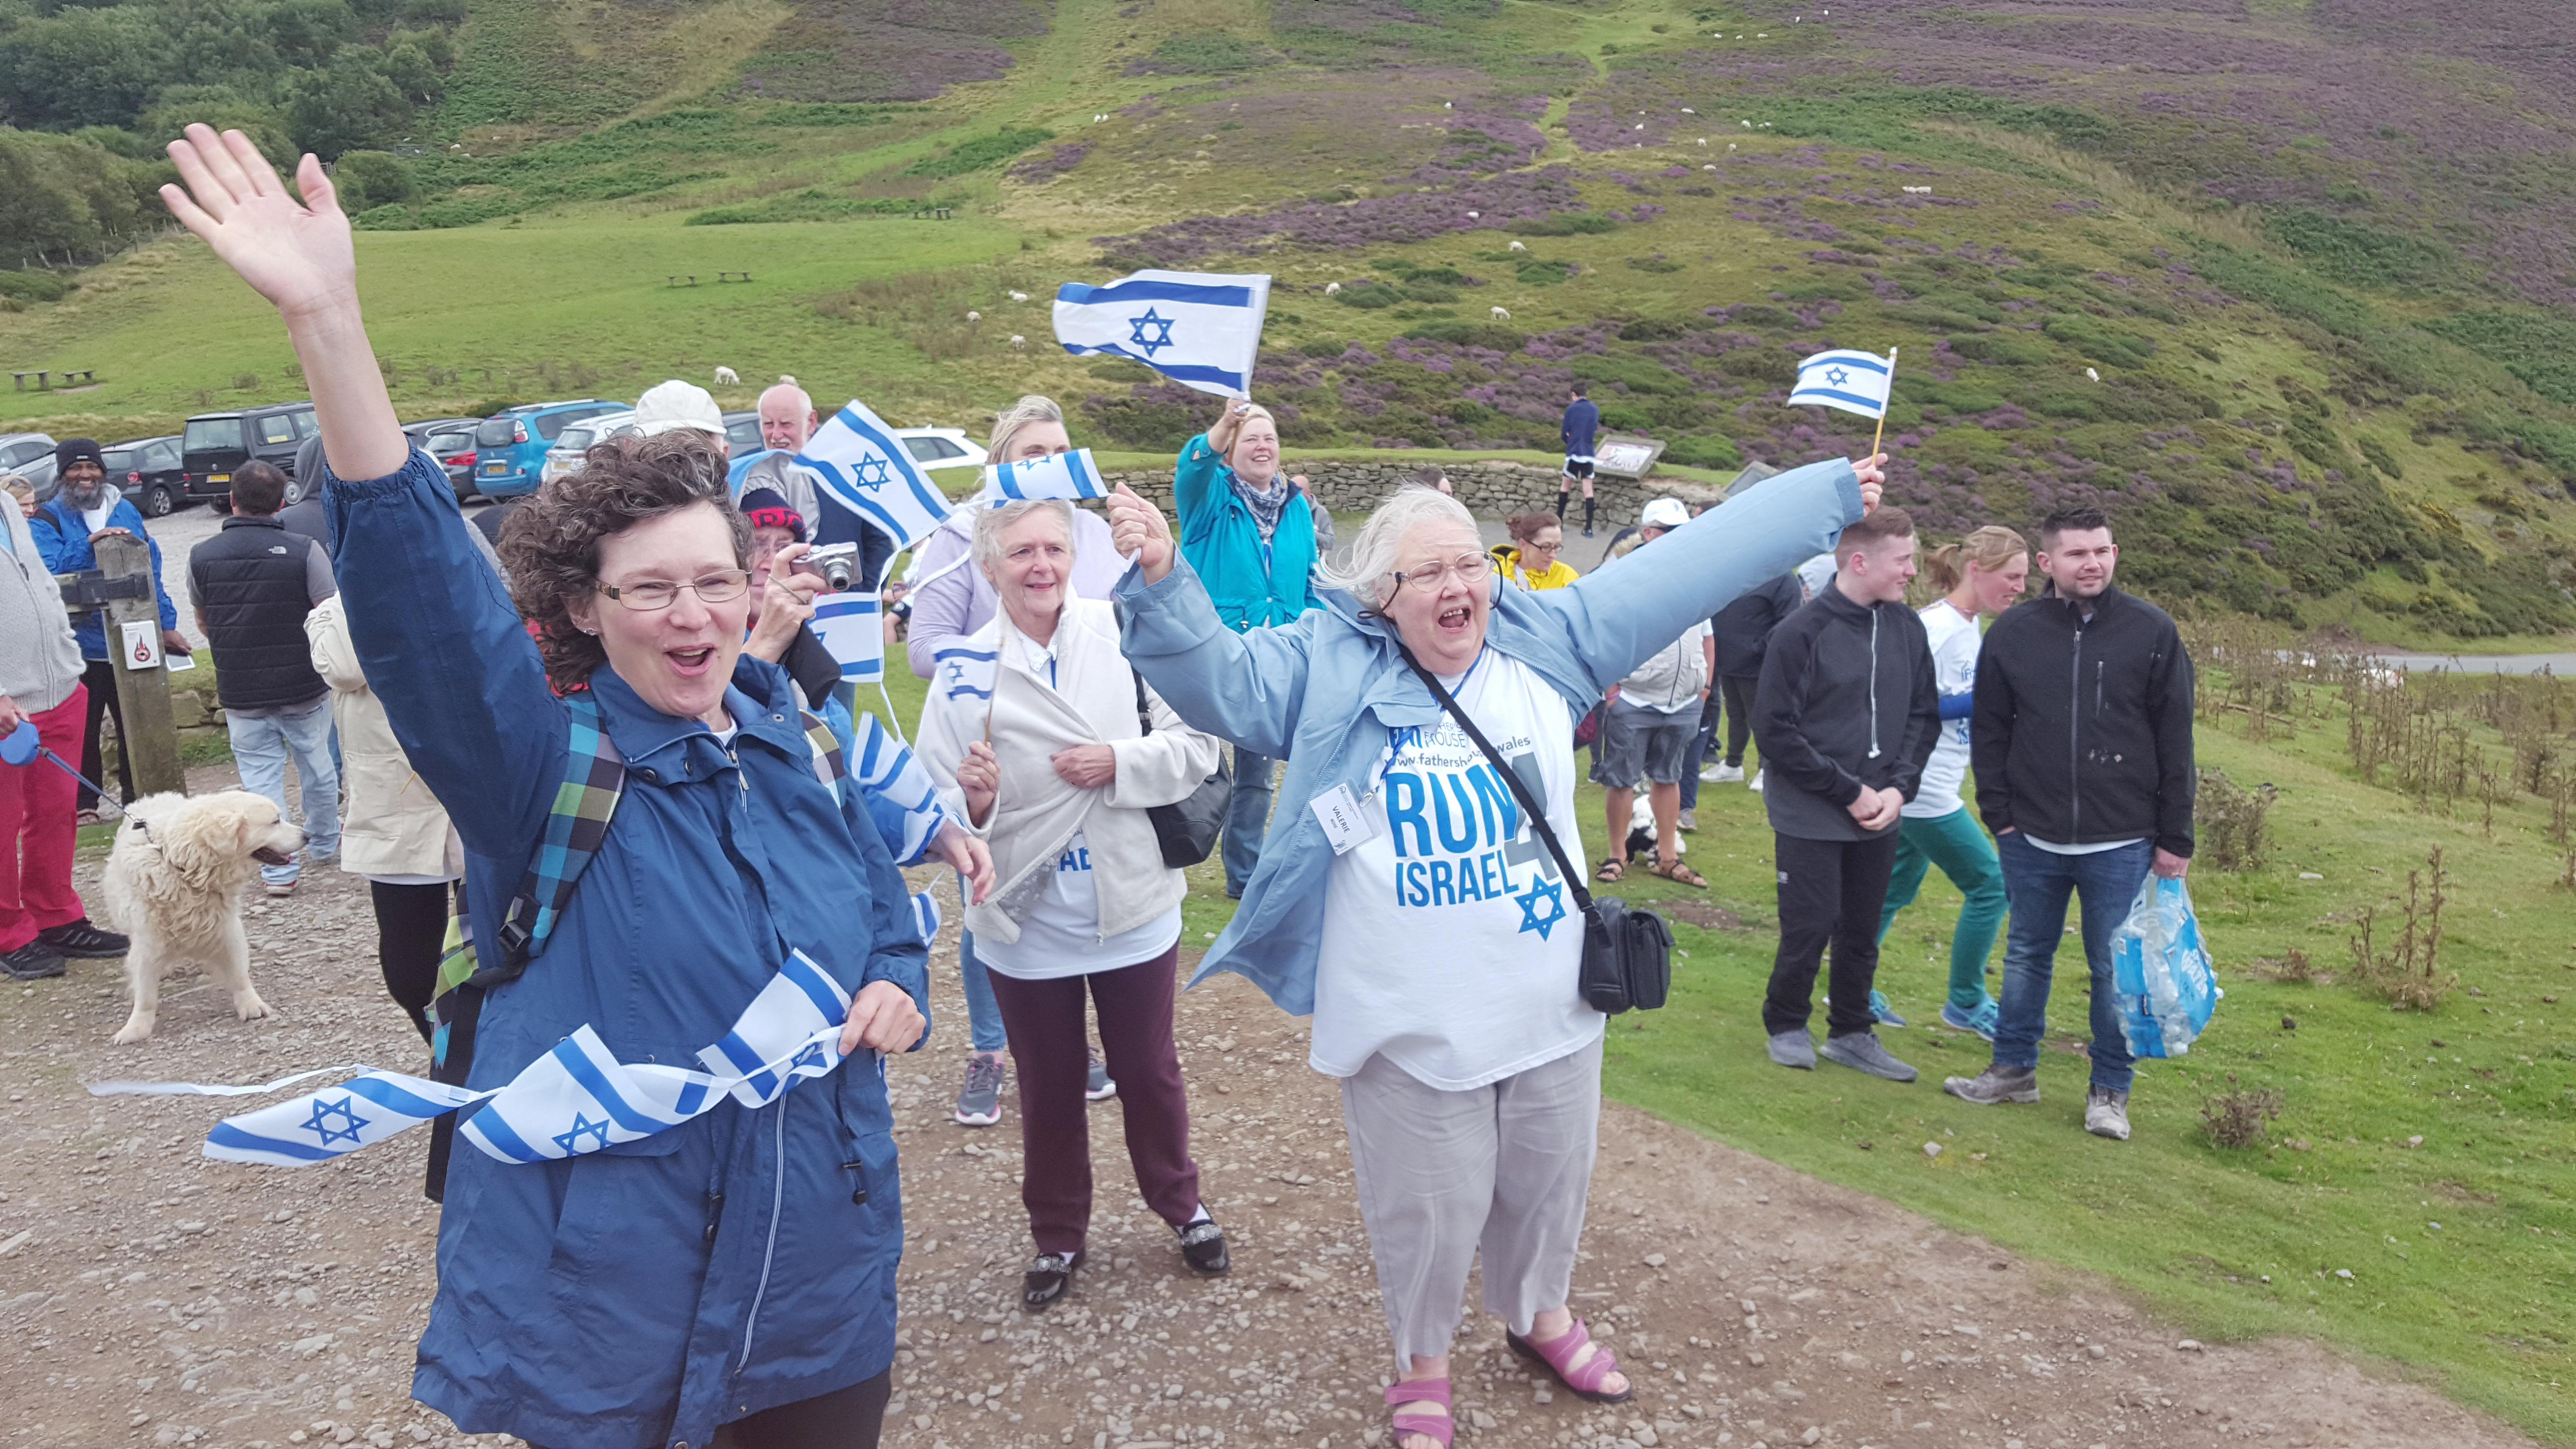 In an event organised by the Father's House Sabbath congregation at Shotton, Deeside, cheerleaders greet 80 intrepid runners as they complete 8km along the Clwydian range in North Wales to demonstrate Christian support for Israel